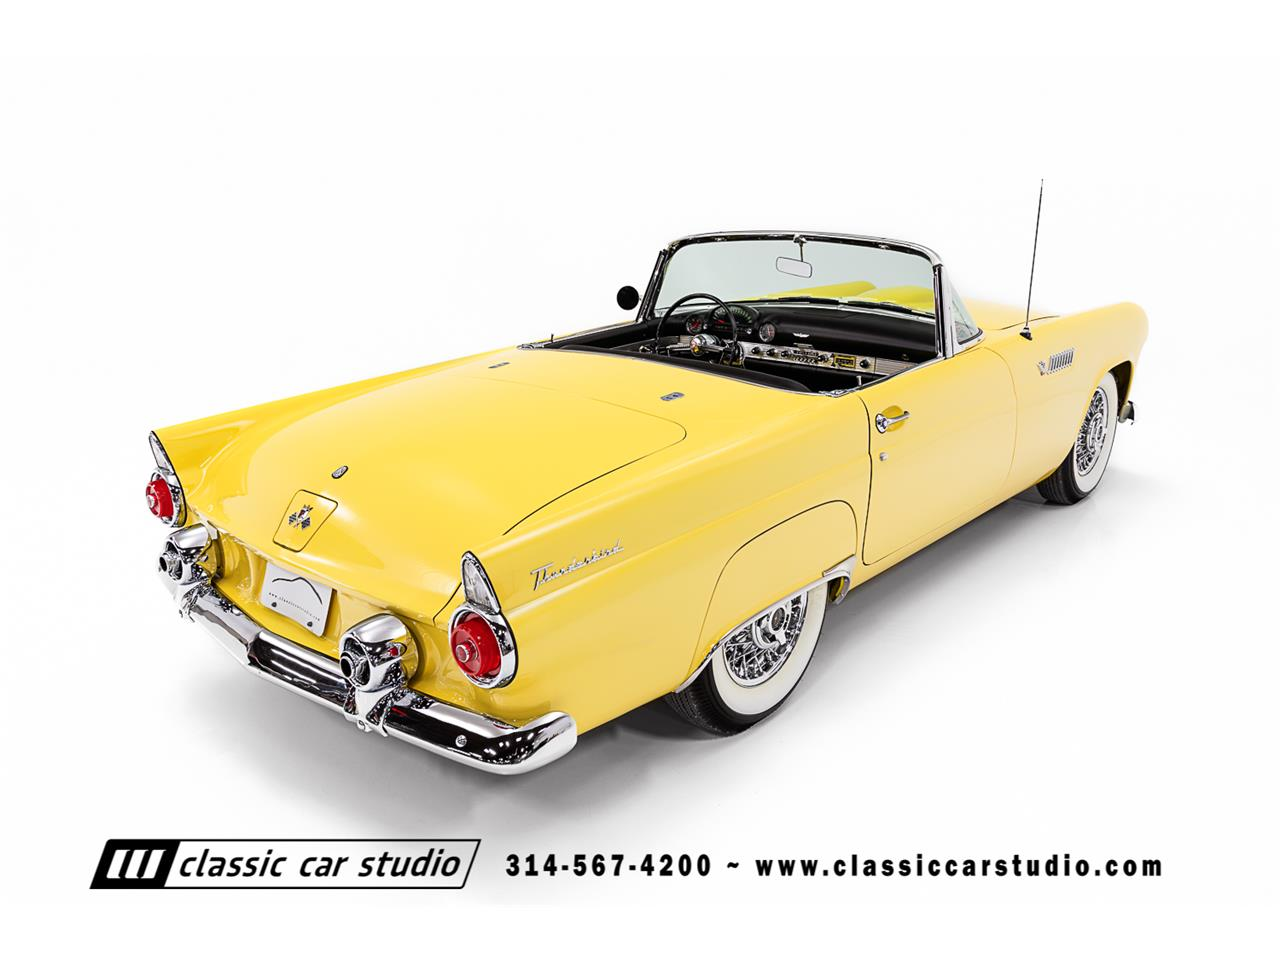 Large Picture of Classic 1955 Ford Thunderbird located in SAINT LOUIS Missouri - PKP1